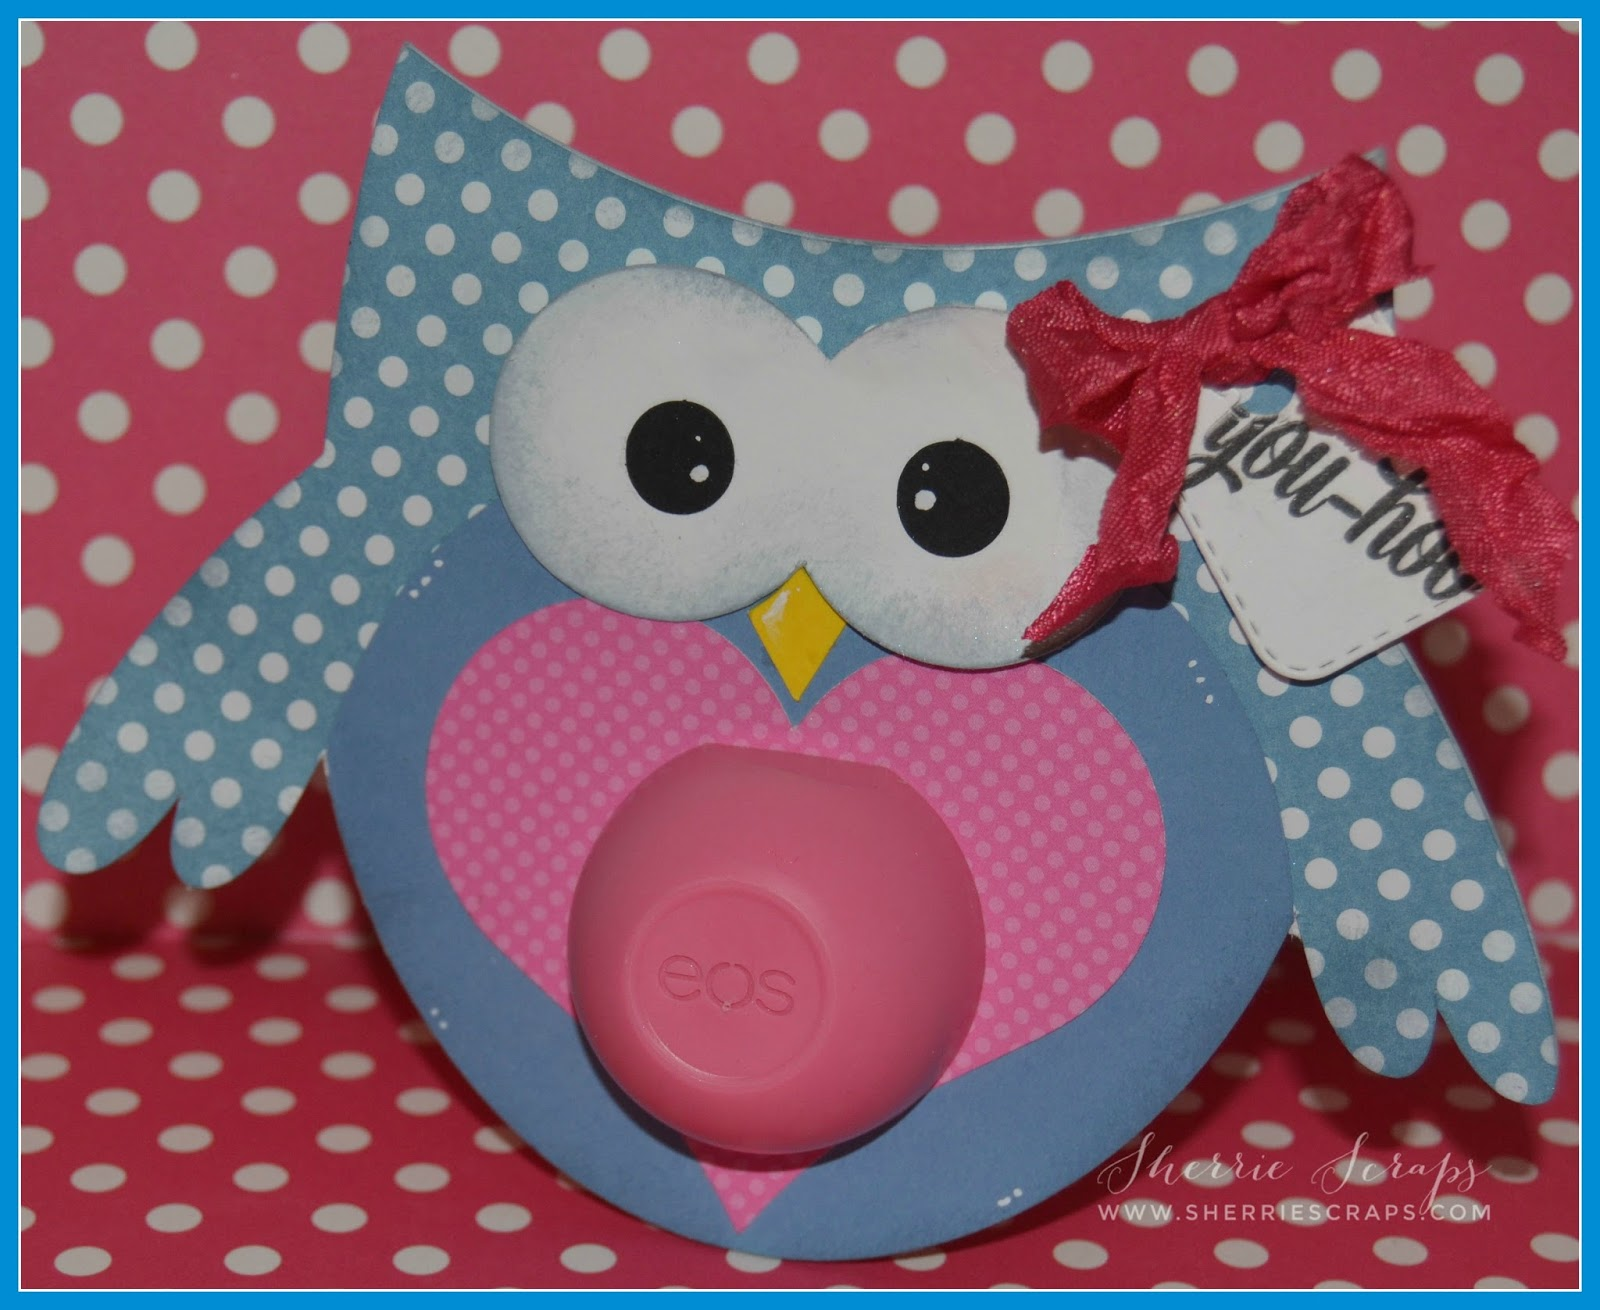 The Cute Sentiment Is From Jaded BlossomYoure A Hoot Stamp Set And Stamped Onto Tag Mini Dies